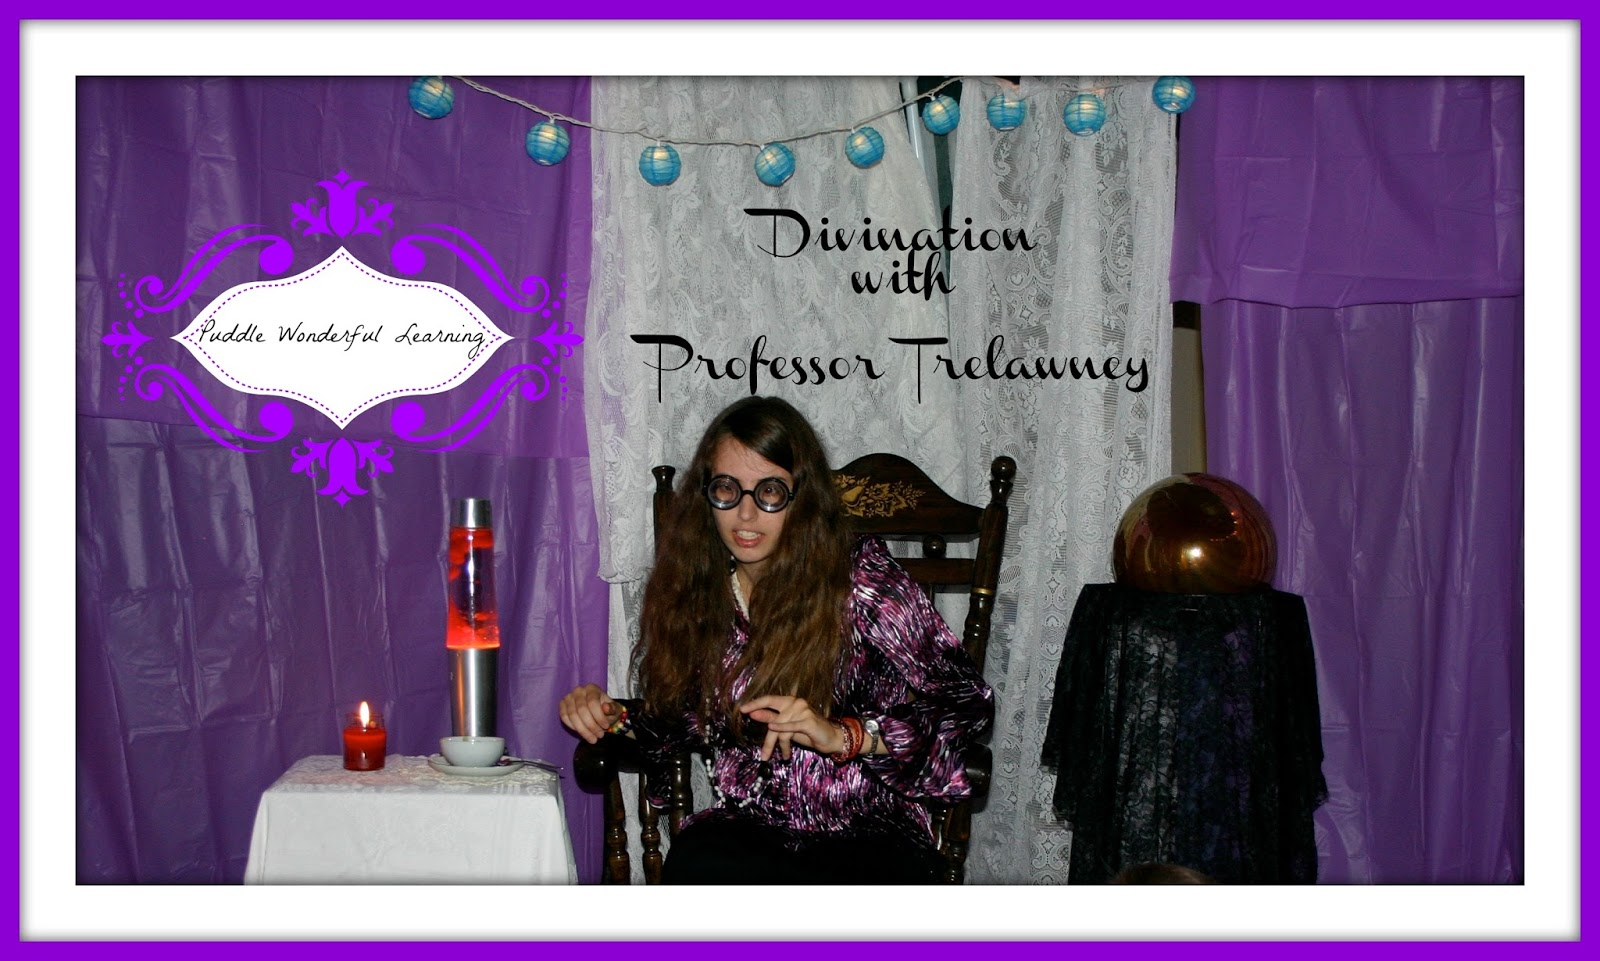 Puddle Wonderful Learning Harry Potter Party Divination